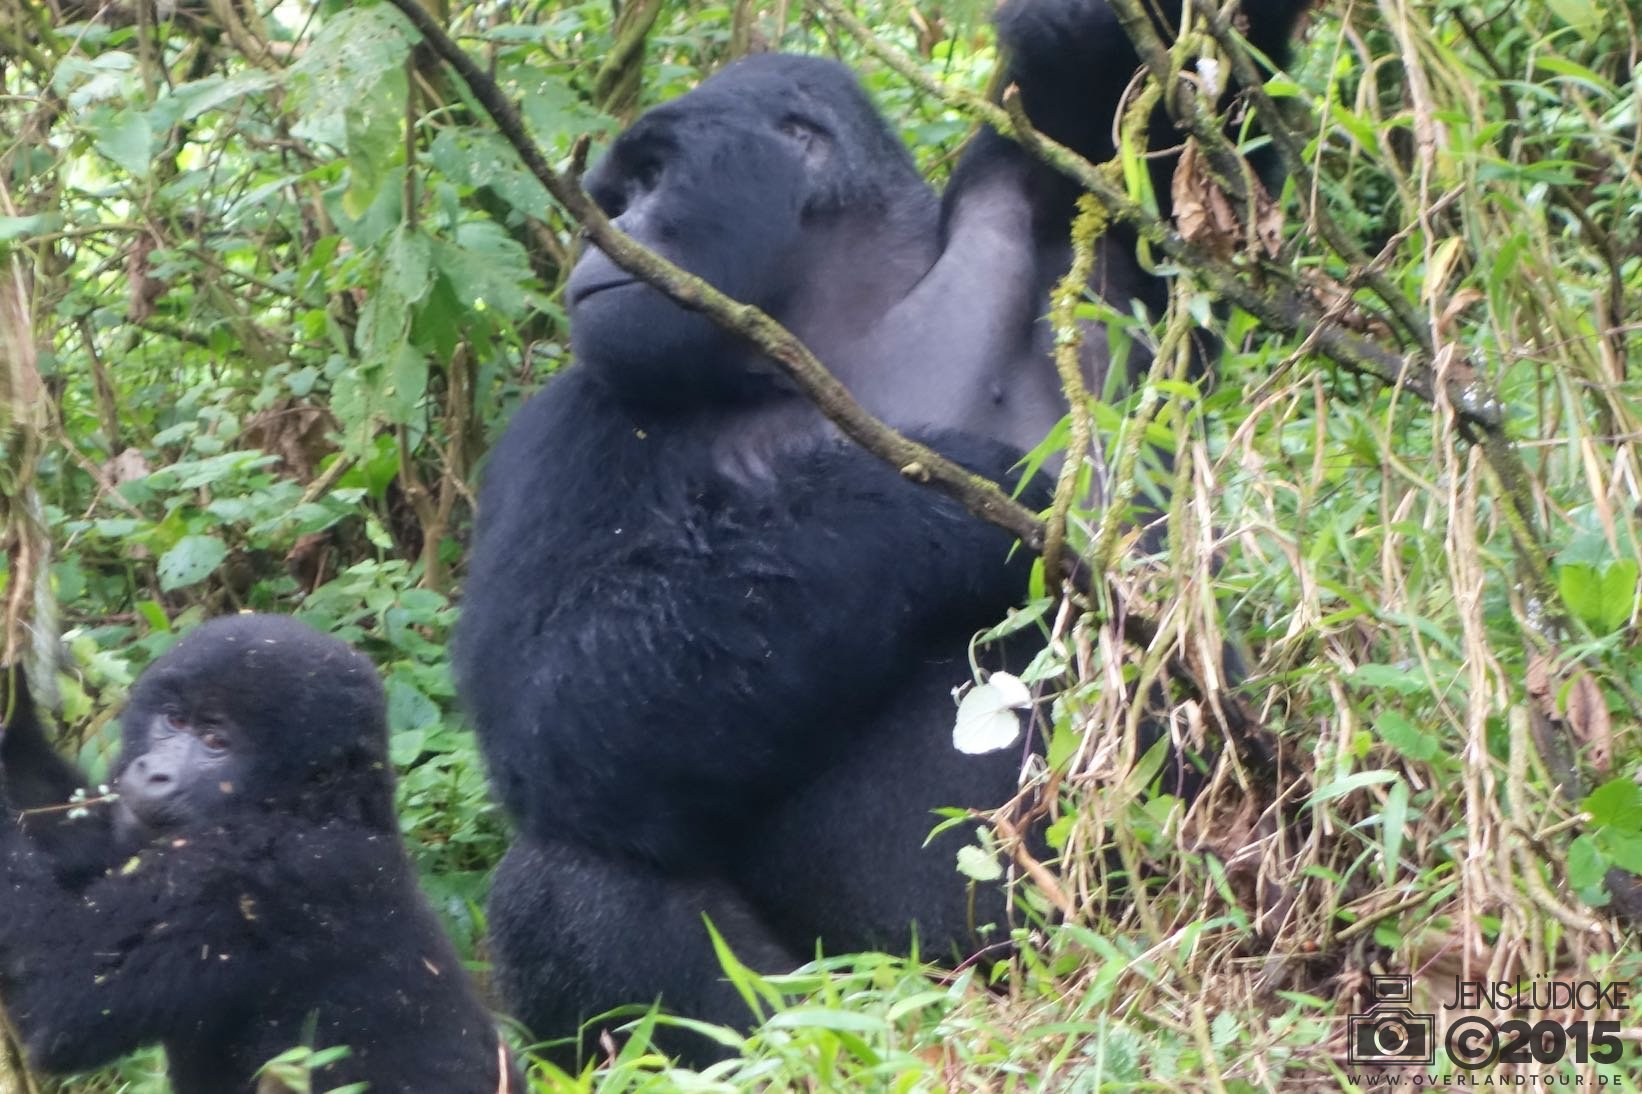 Mgahinga Gorillas National Park